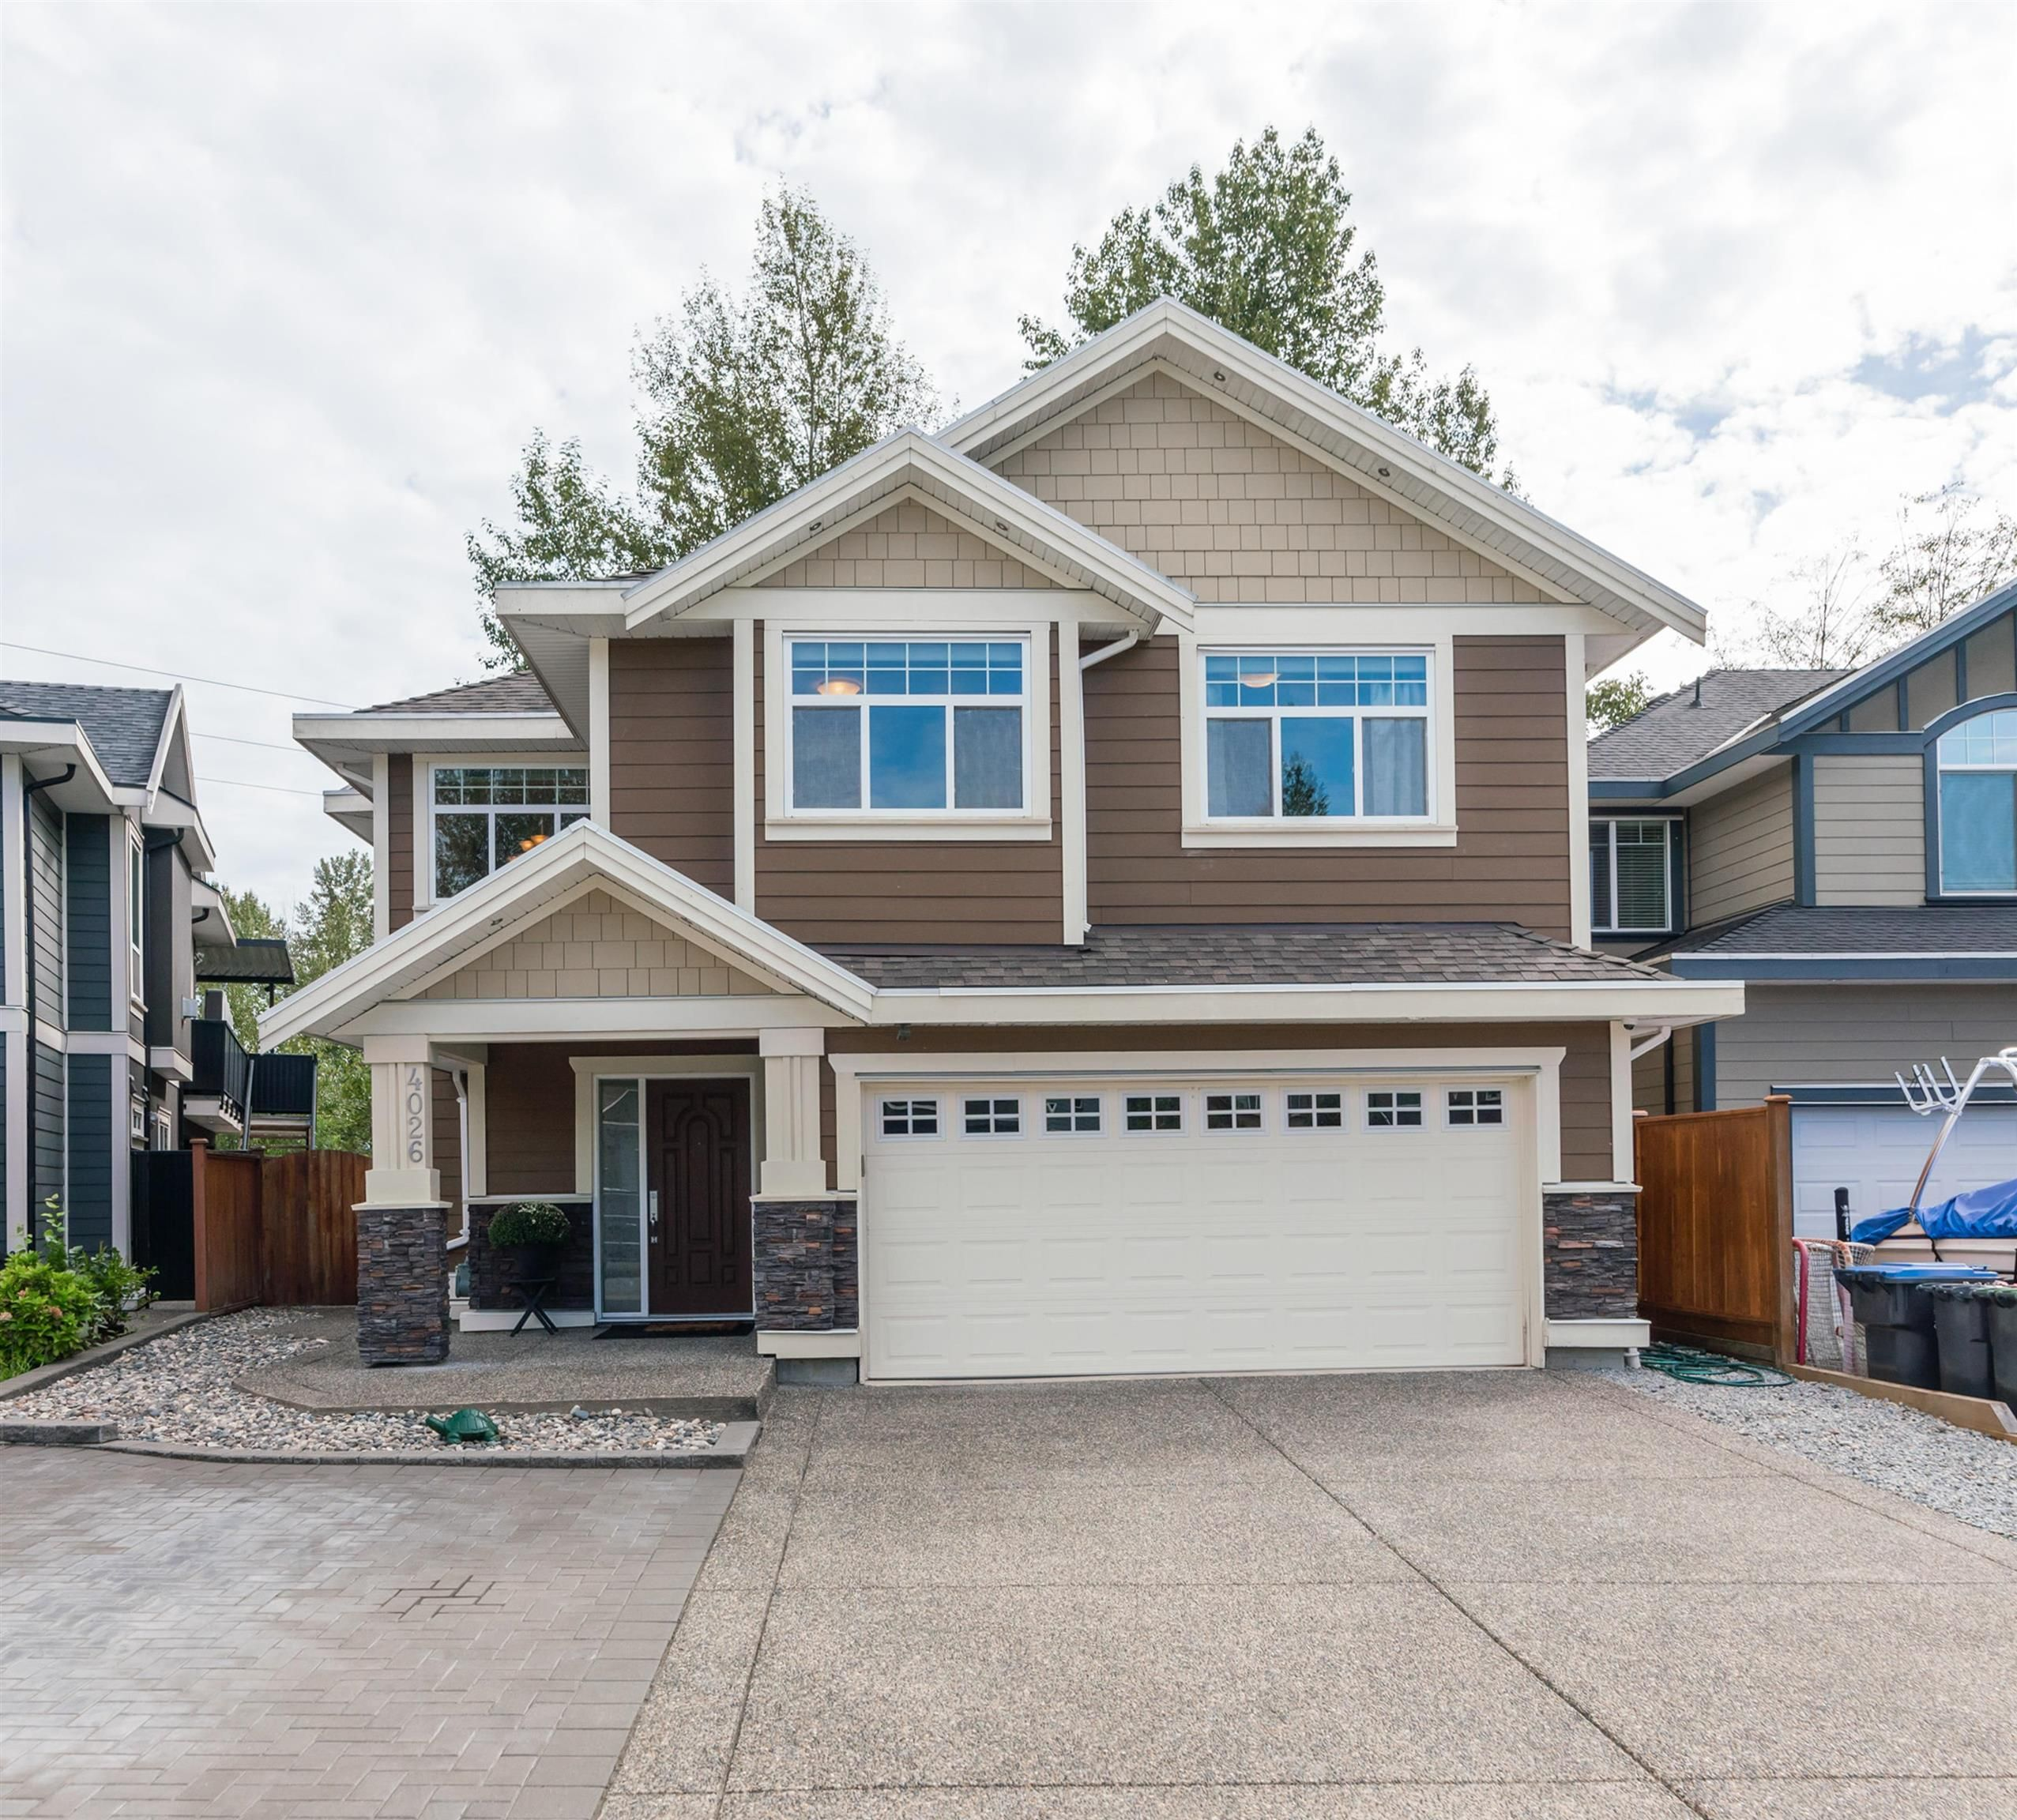 Main Photo: 4026 JOSEPH Place in Port Coquitlam: Lincoln Park PQ House for sale : MLS®# R2617578